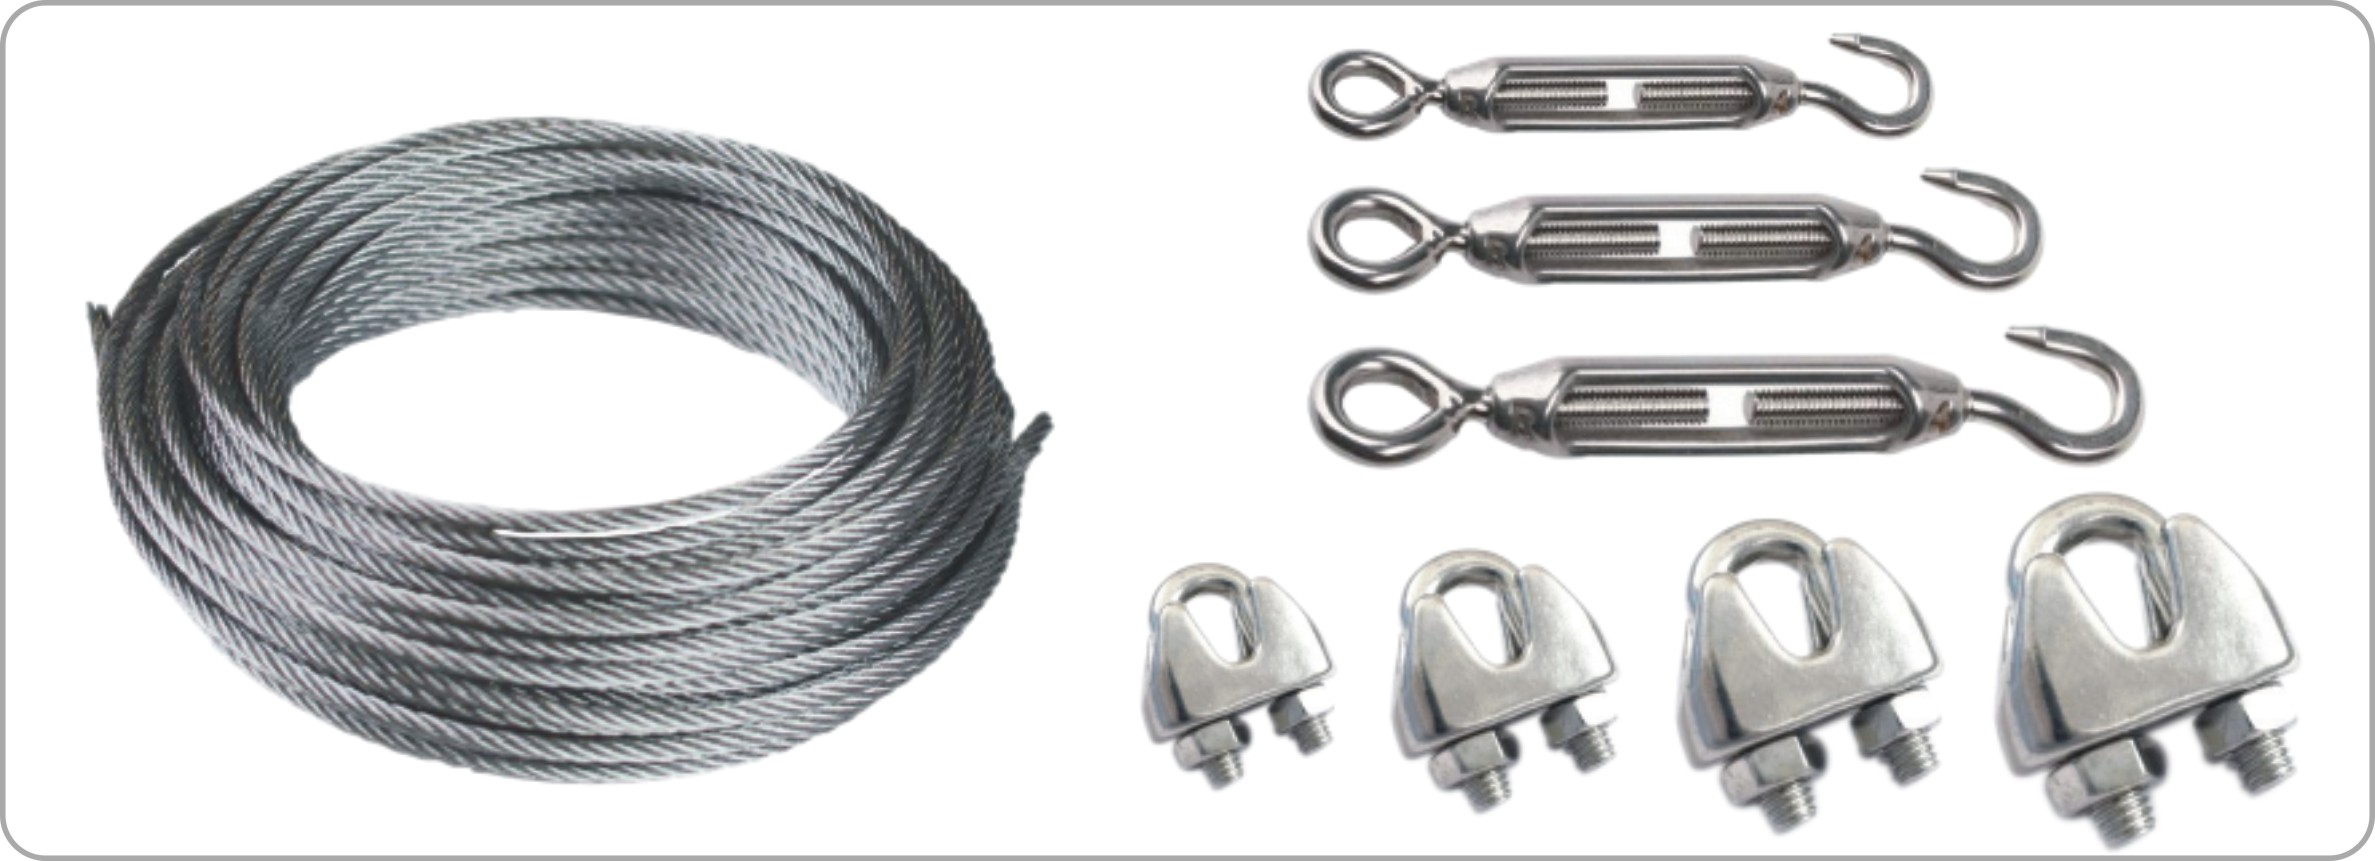 Wire Rope & accessories